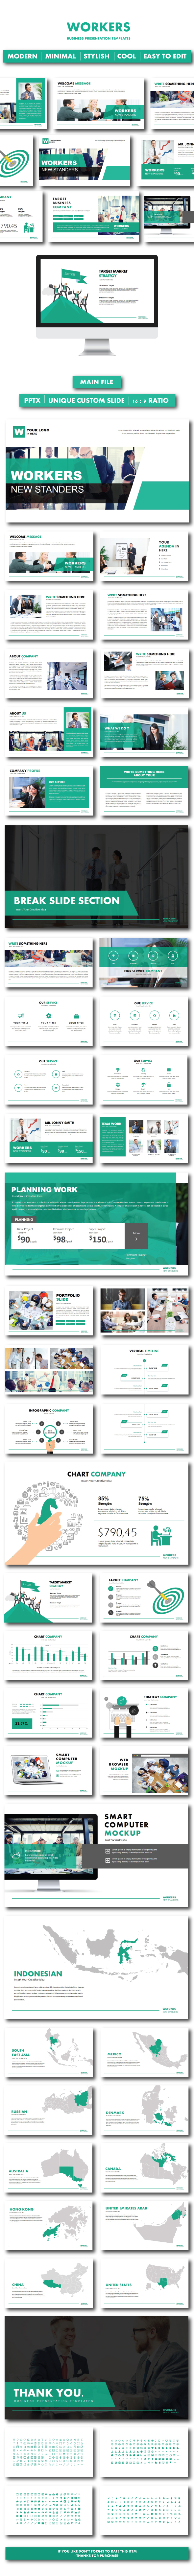 Workers Business PowerPoint Templates - PowerPoint Templates Presentation Templates